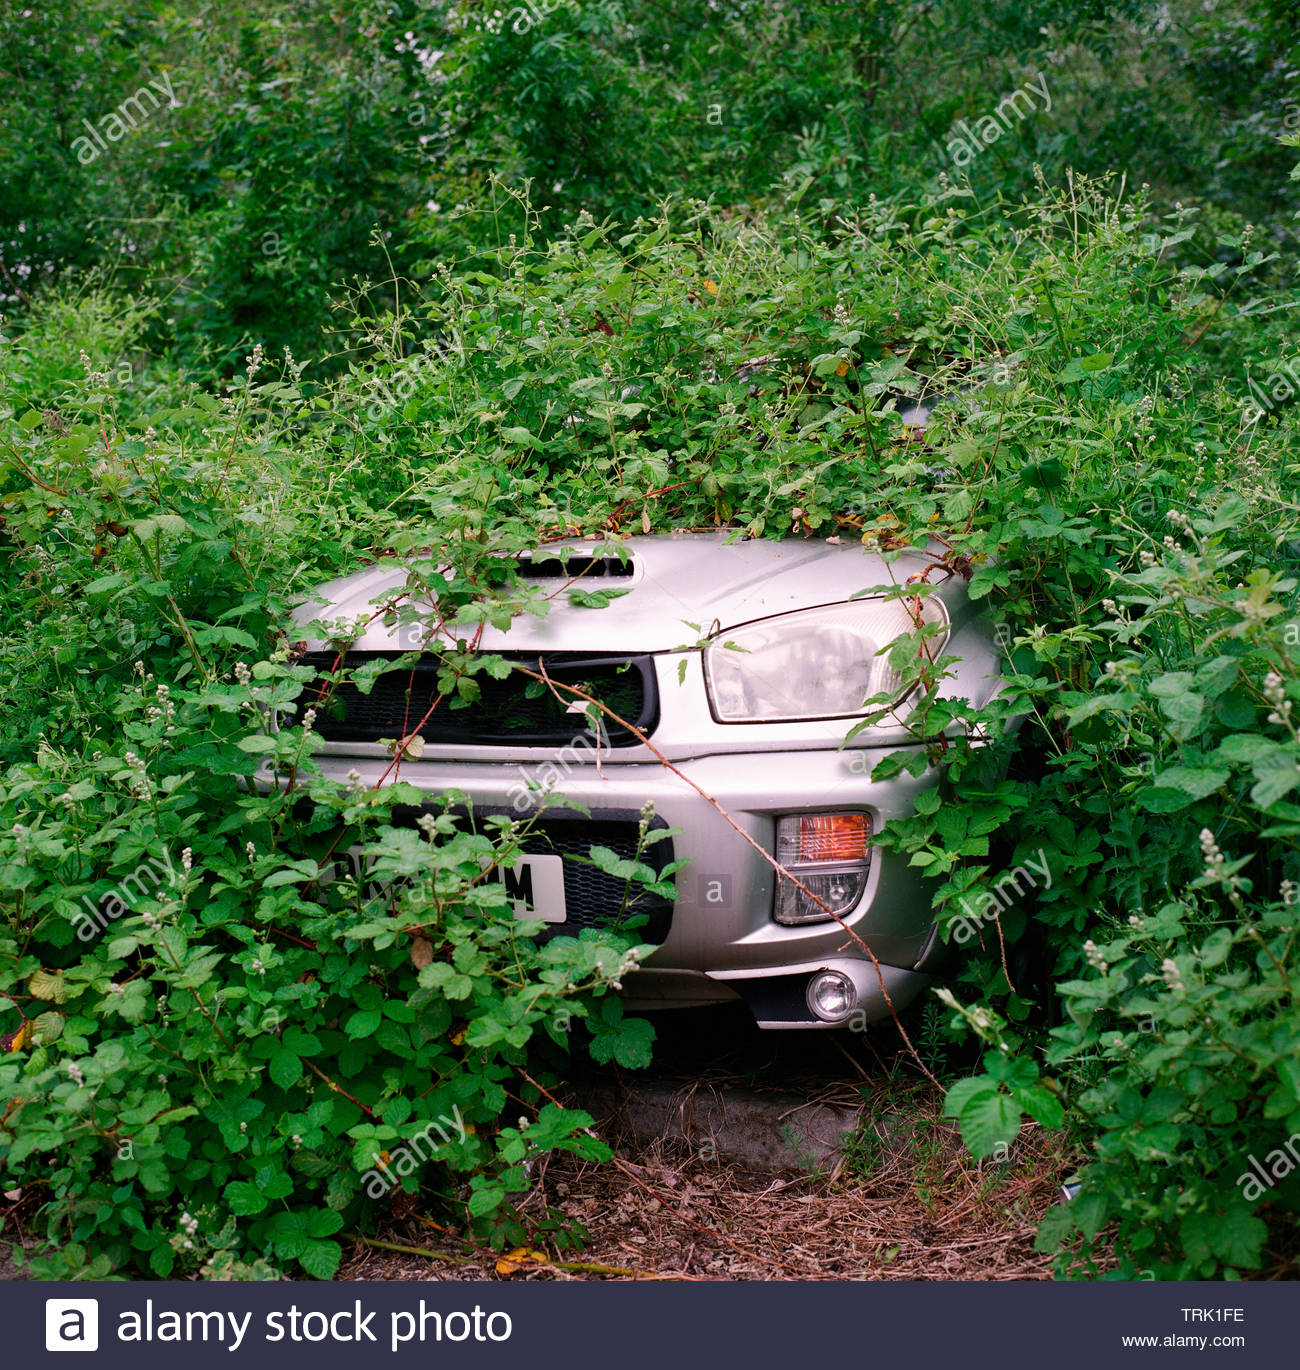 An abandoned Toyota car hidden in thick undergrowth. Gloucestershire, UK. - Stock Image